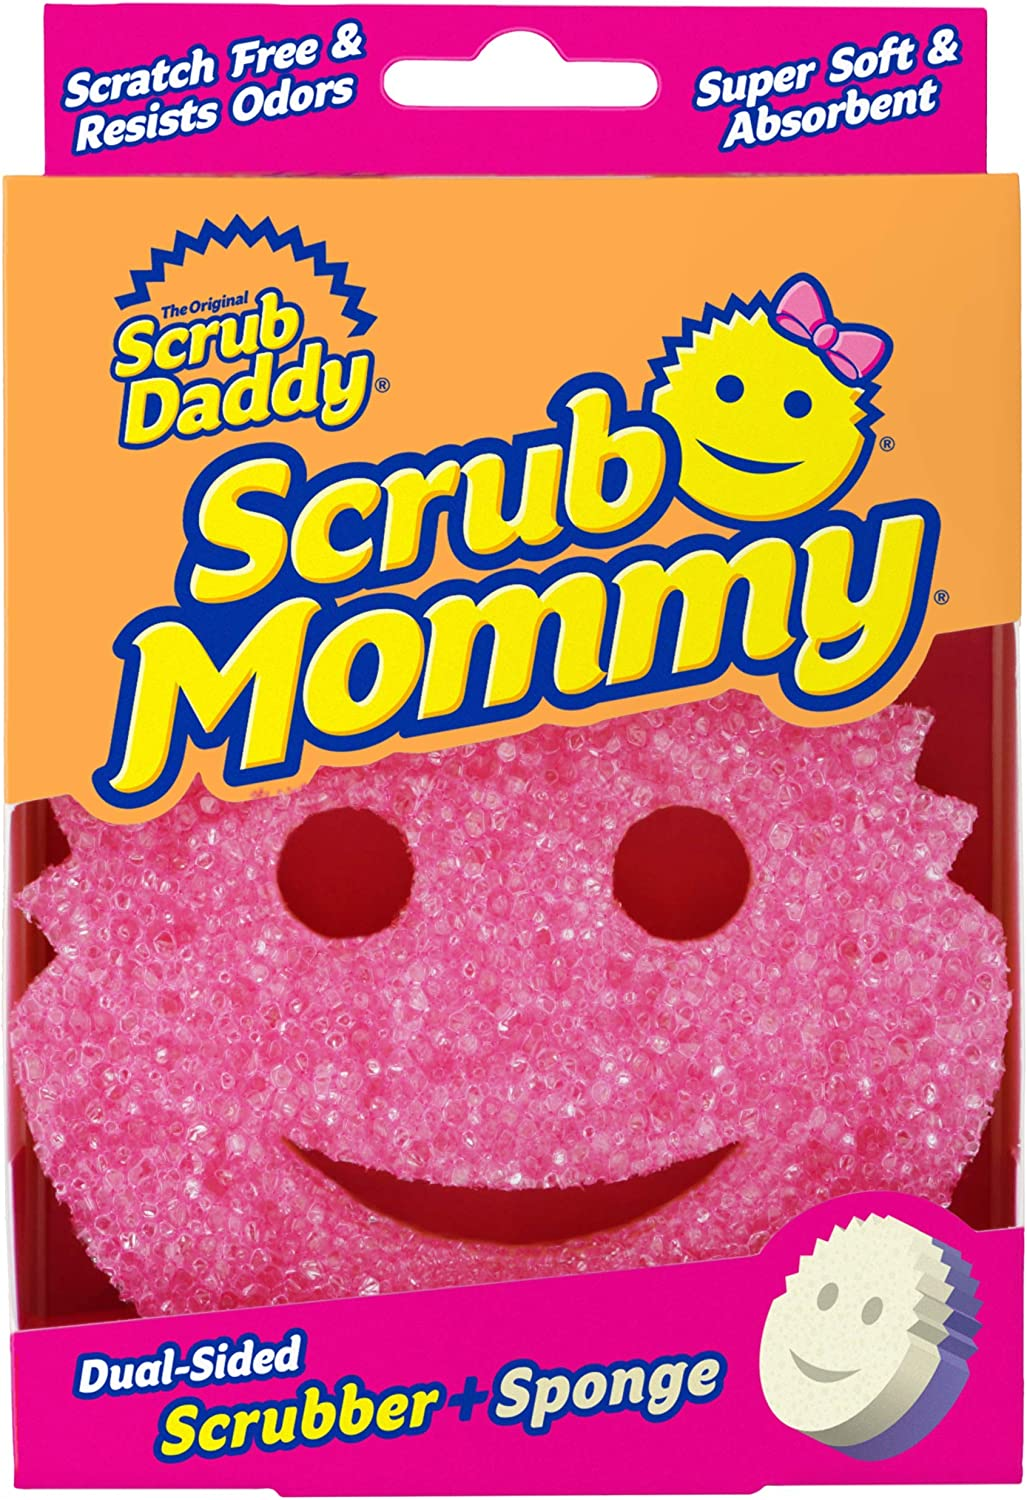 Scrub Daddy, Scrub Mommy - Dual Sided Sponge & Scrubber, Soft in Warm Water, Firm in Cold, FlexTexture, Deep Cleaning, Dishwasher Safe, Multipurpose, Scratch Free, Odor Resistant, Ergonomic (1 Count)